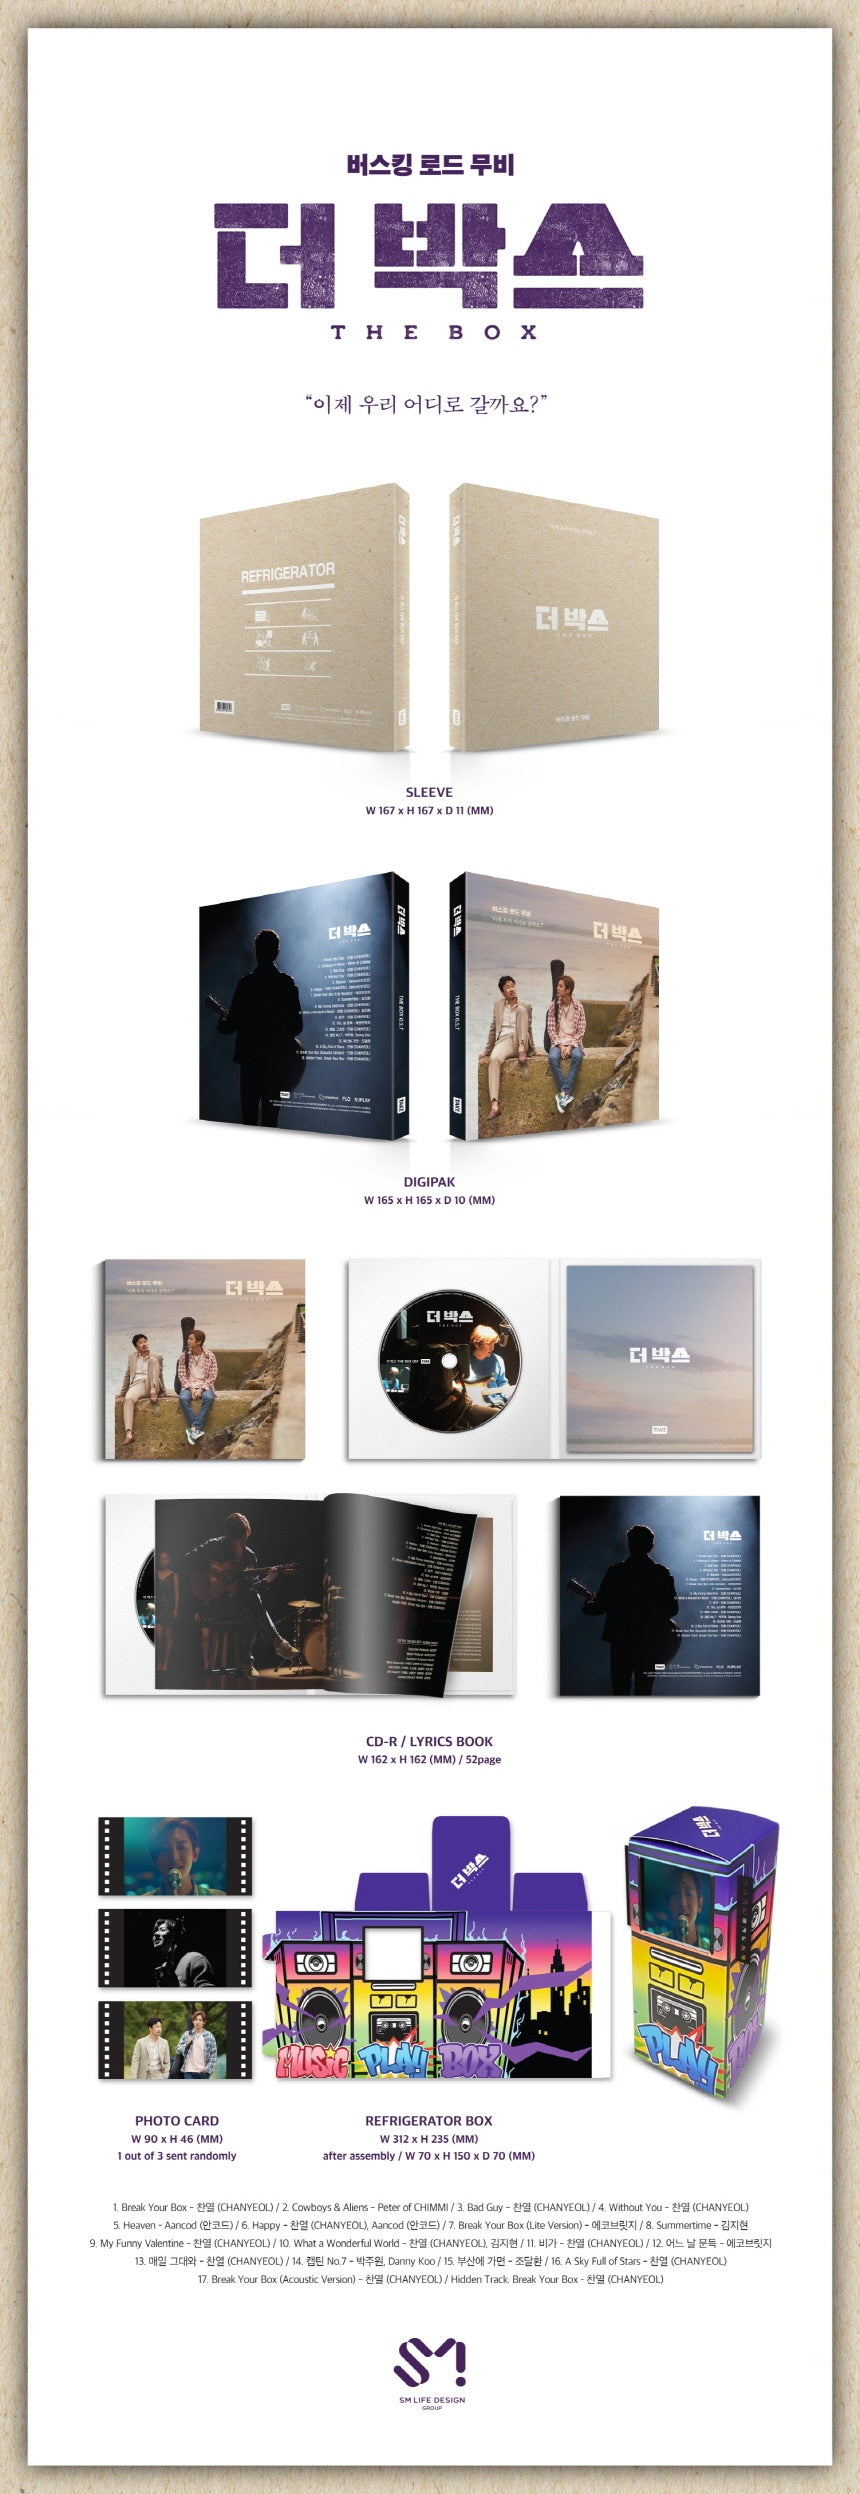 The Box Chanyeol EXO OST SOKOLLAB UK